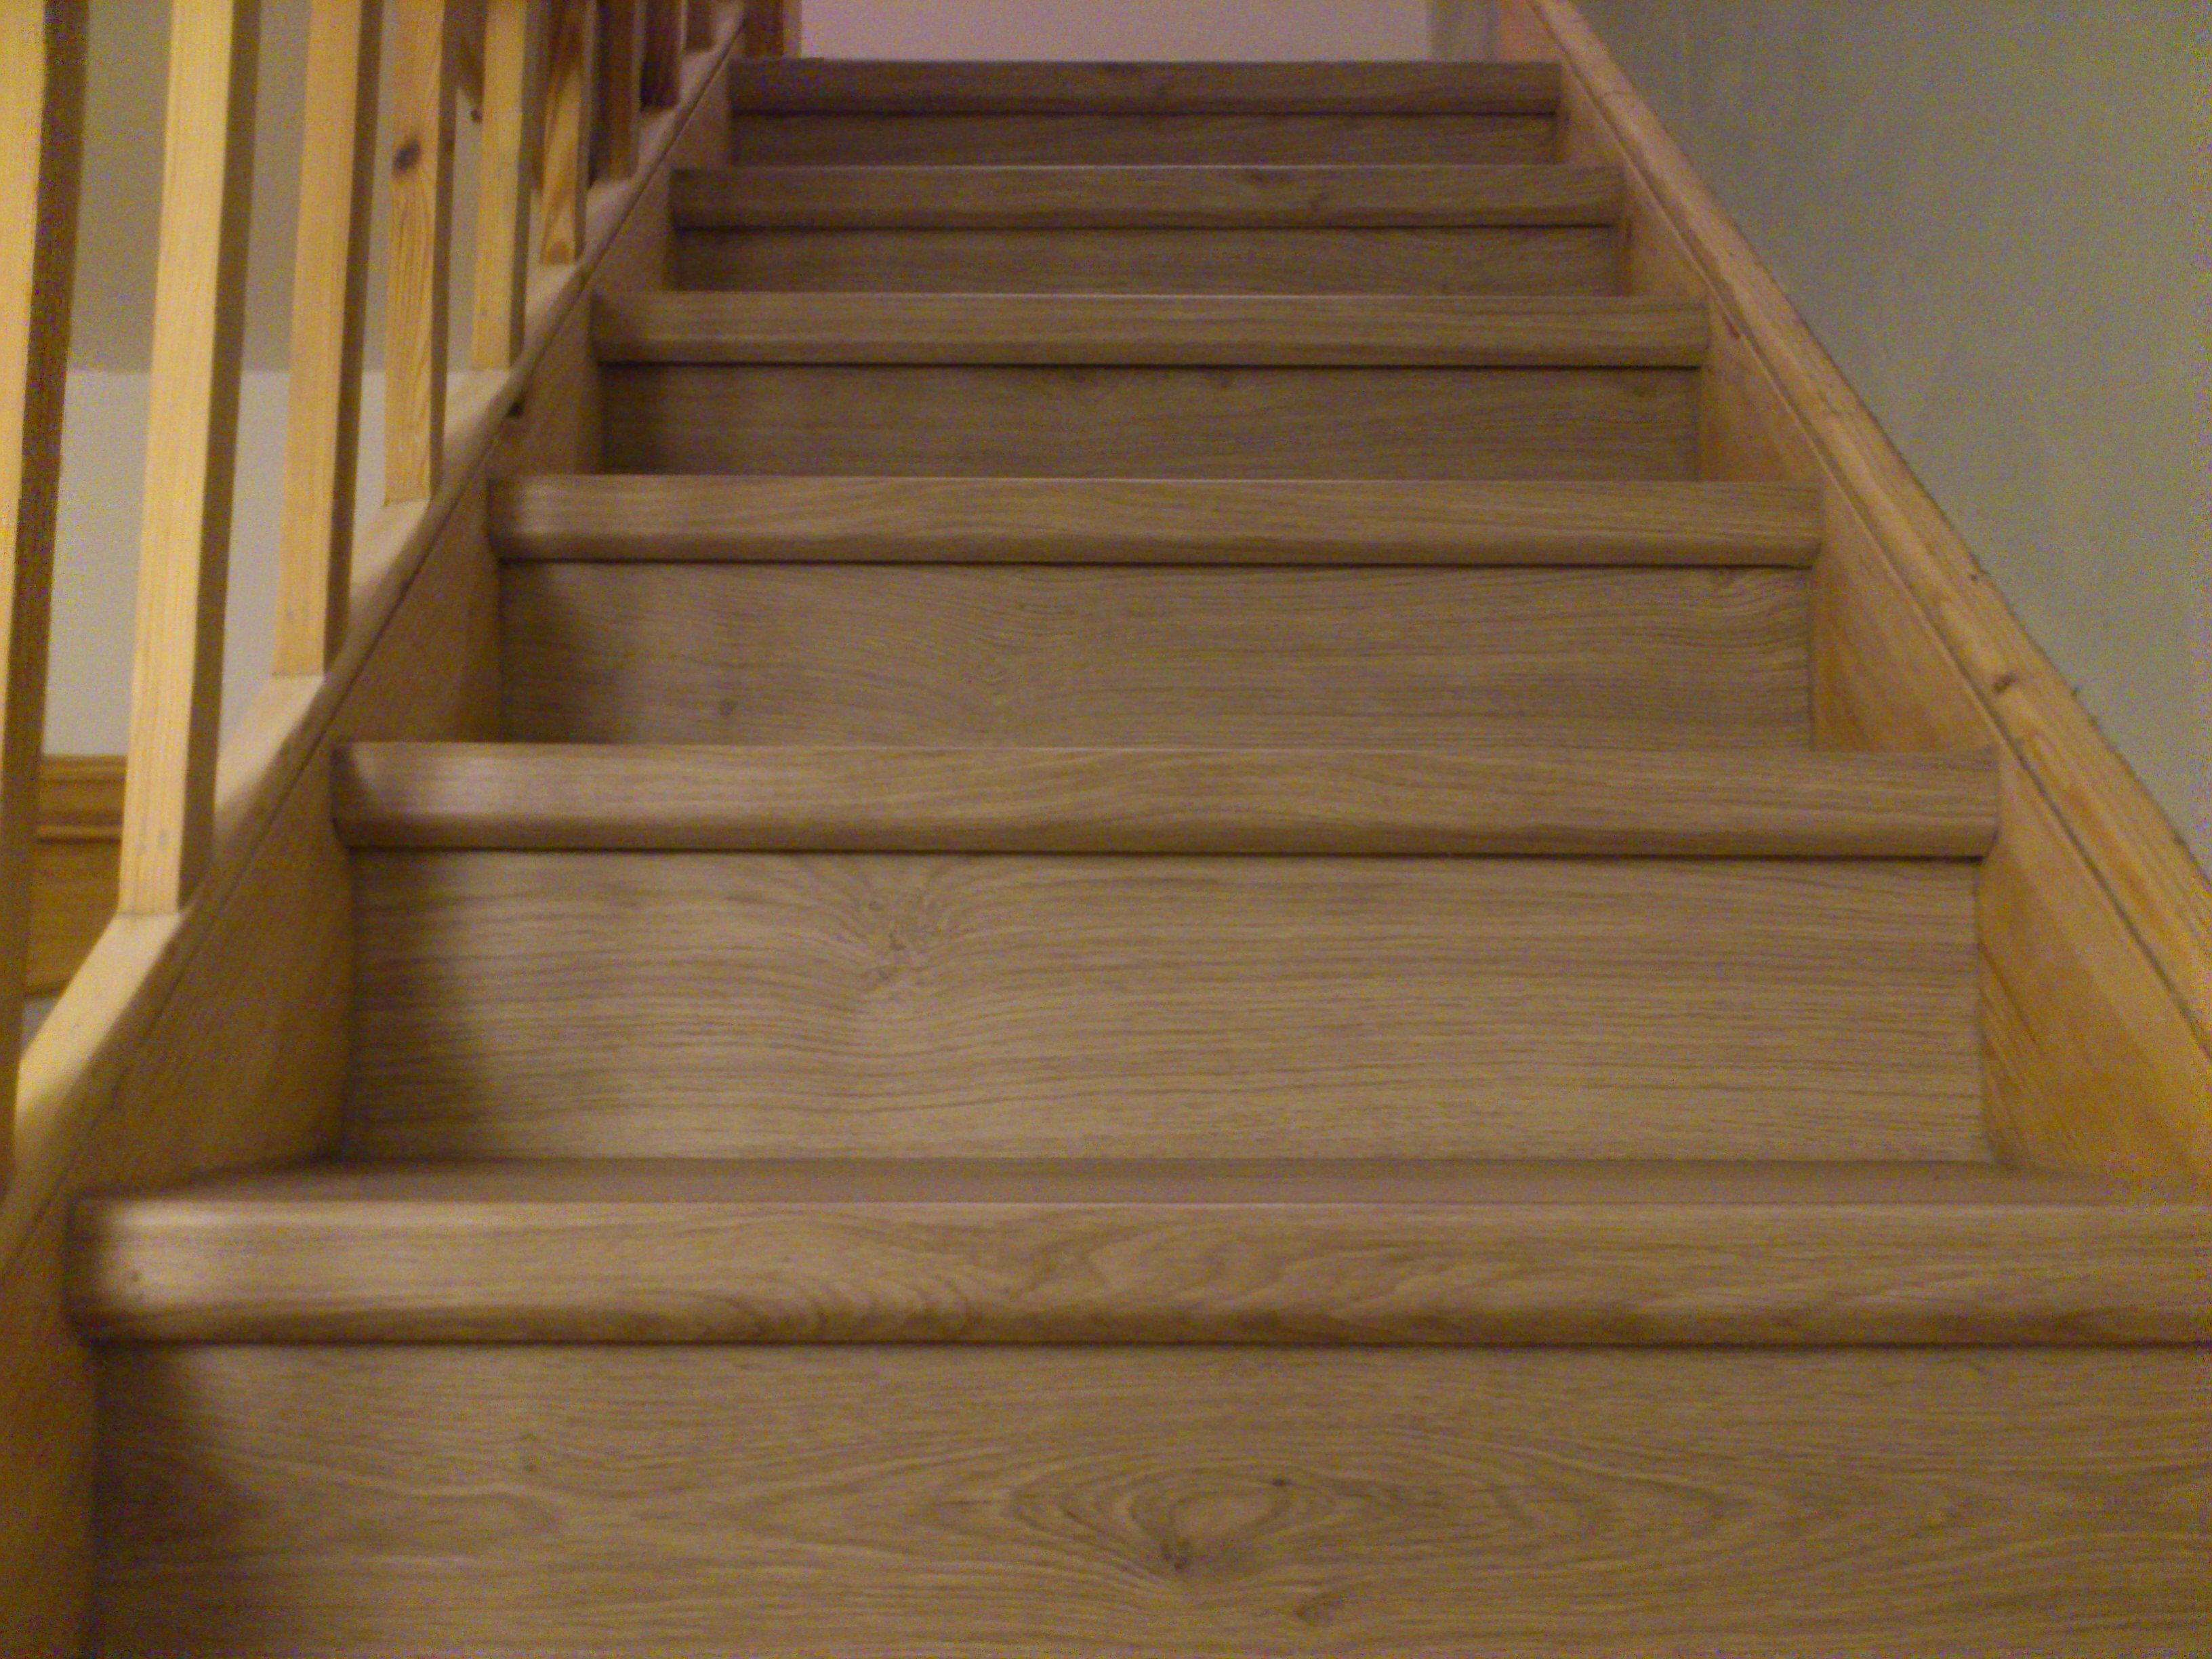 Handrails Stairs Dublin Images